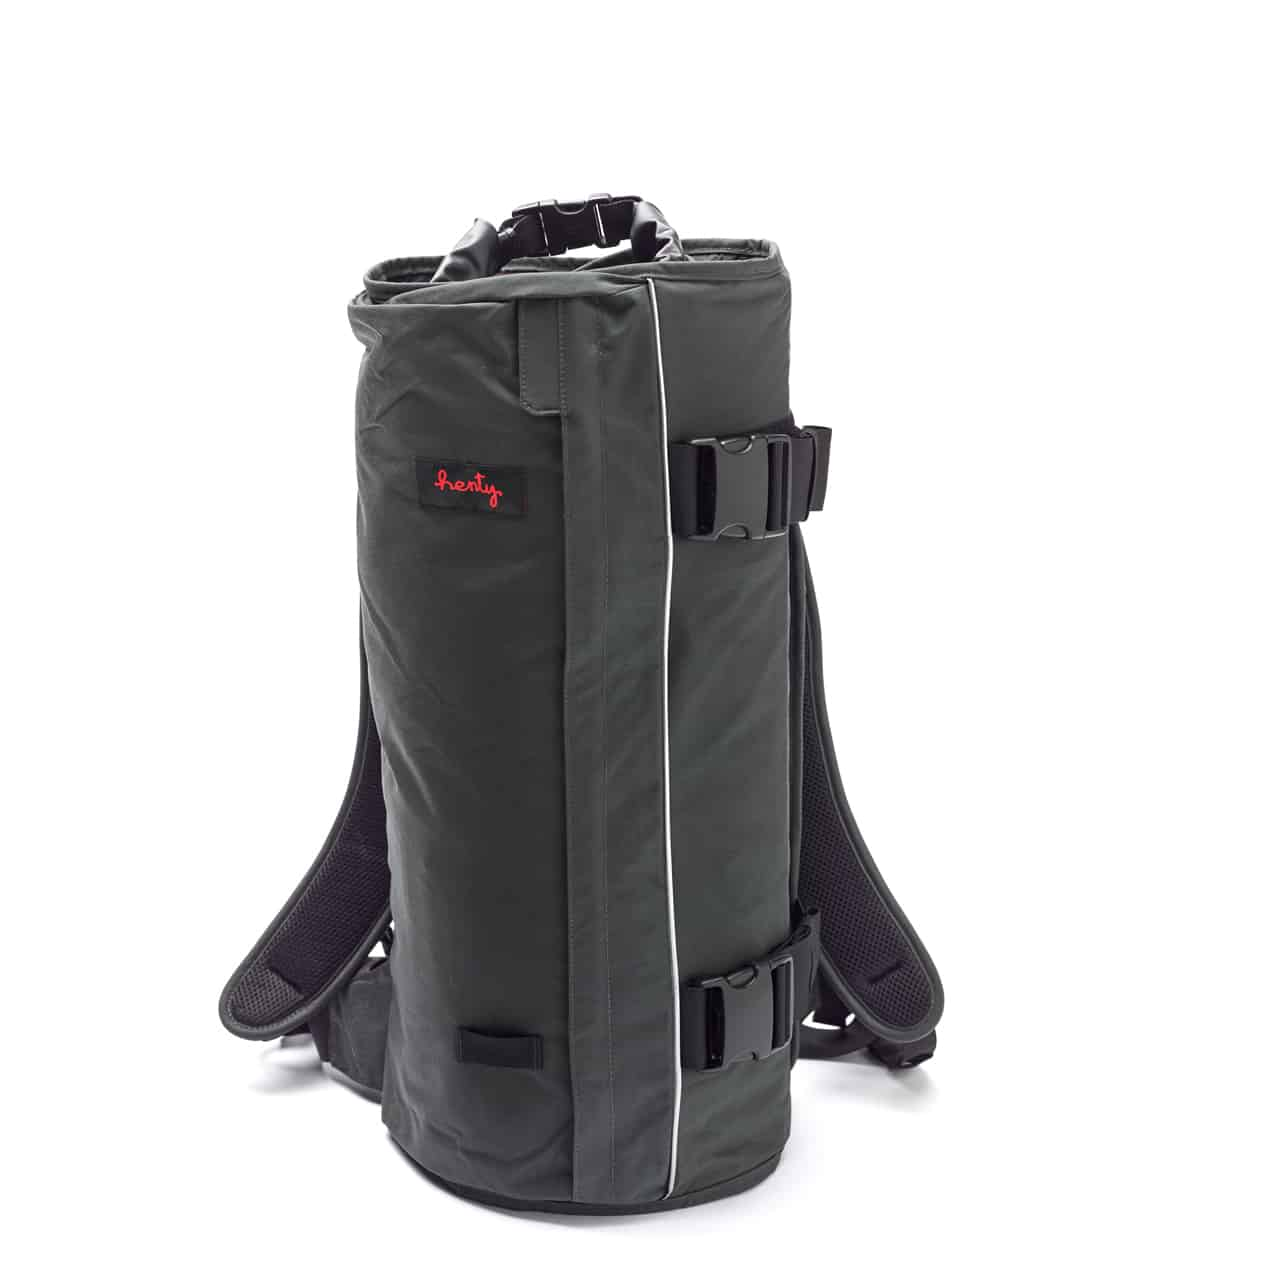 0b3438c7c35f Wingman Backpack A multi-purpose suit and garment bag + 18L Dry ...